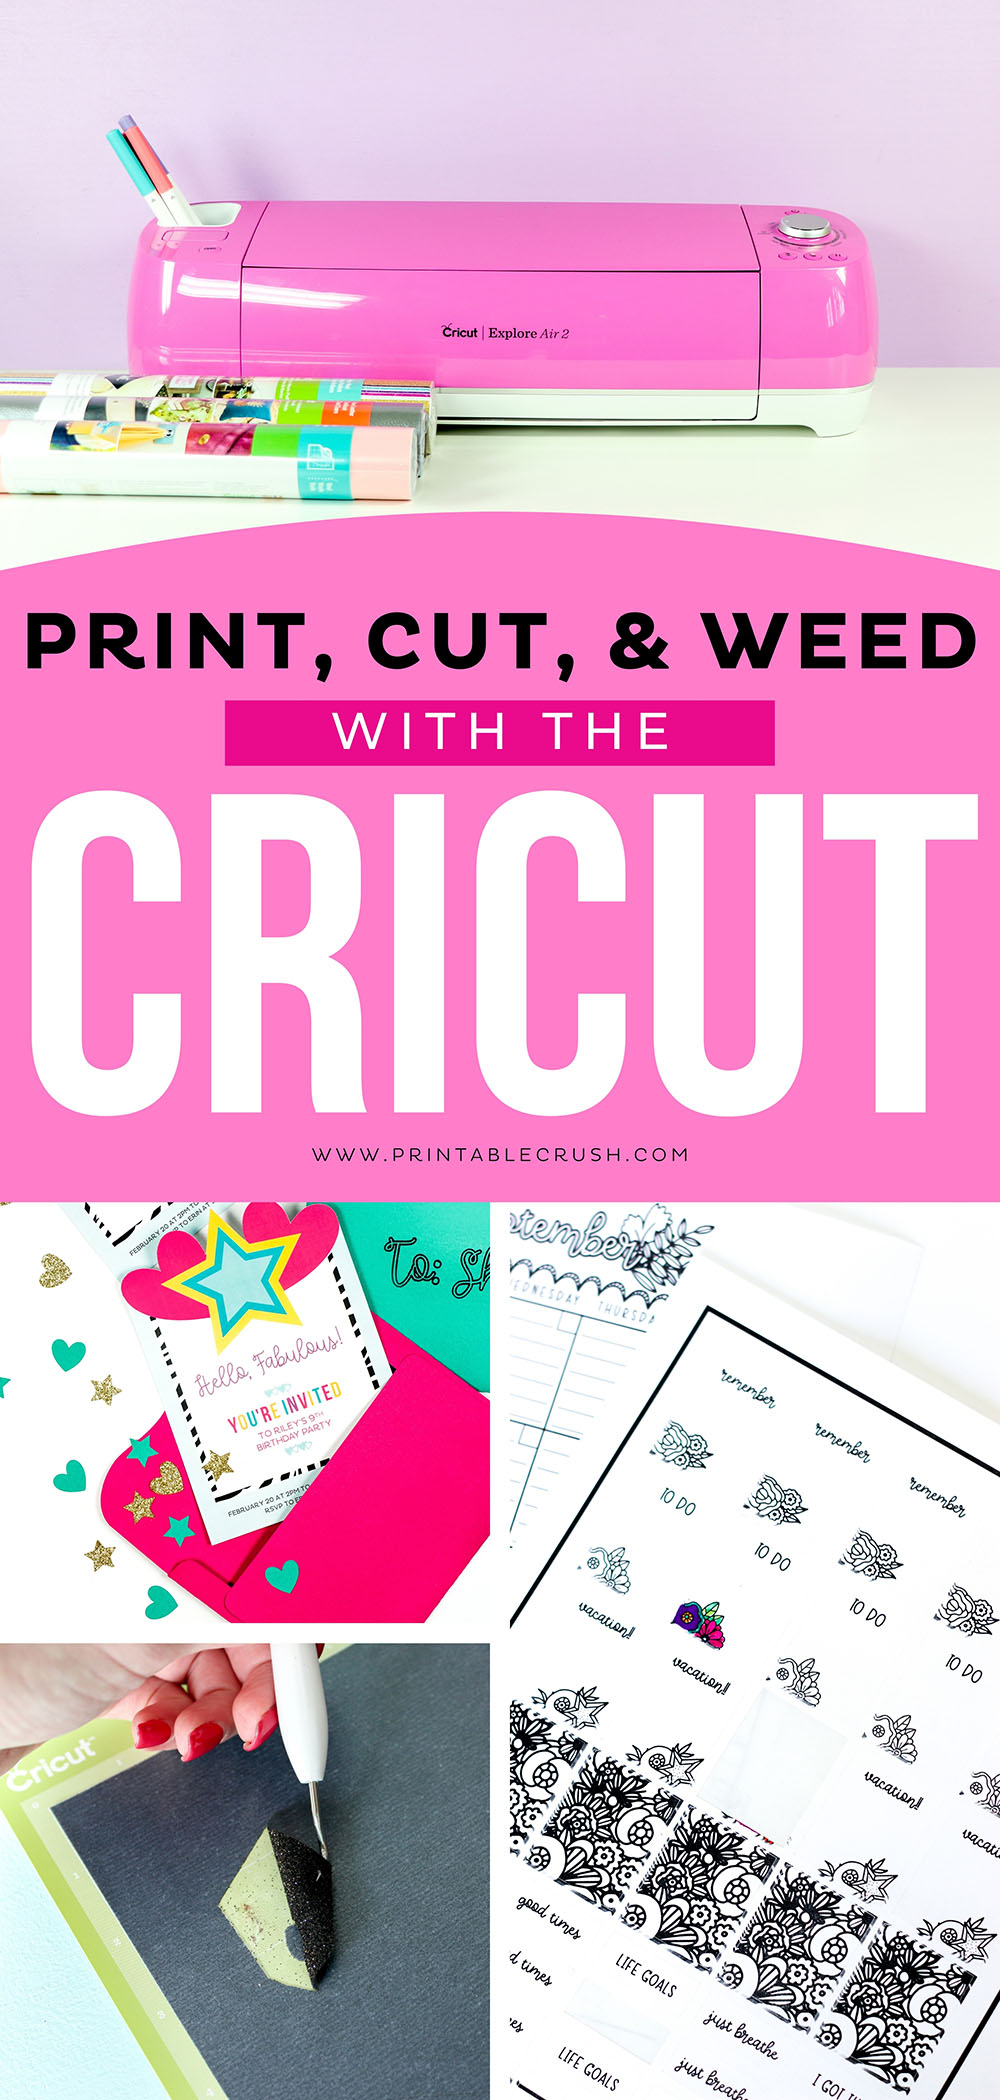 What does it mean to print, cut, and weed with the Cricut? - Printable Crush